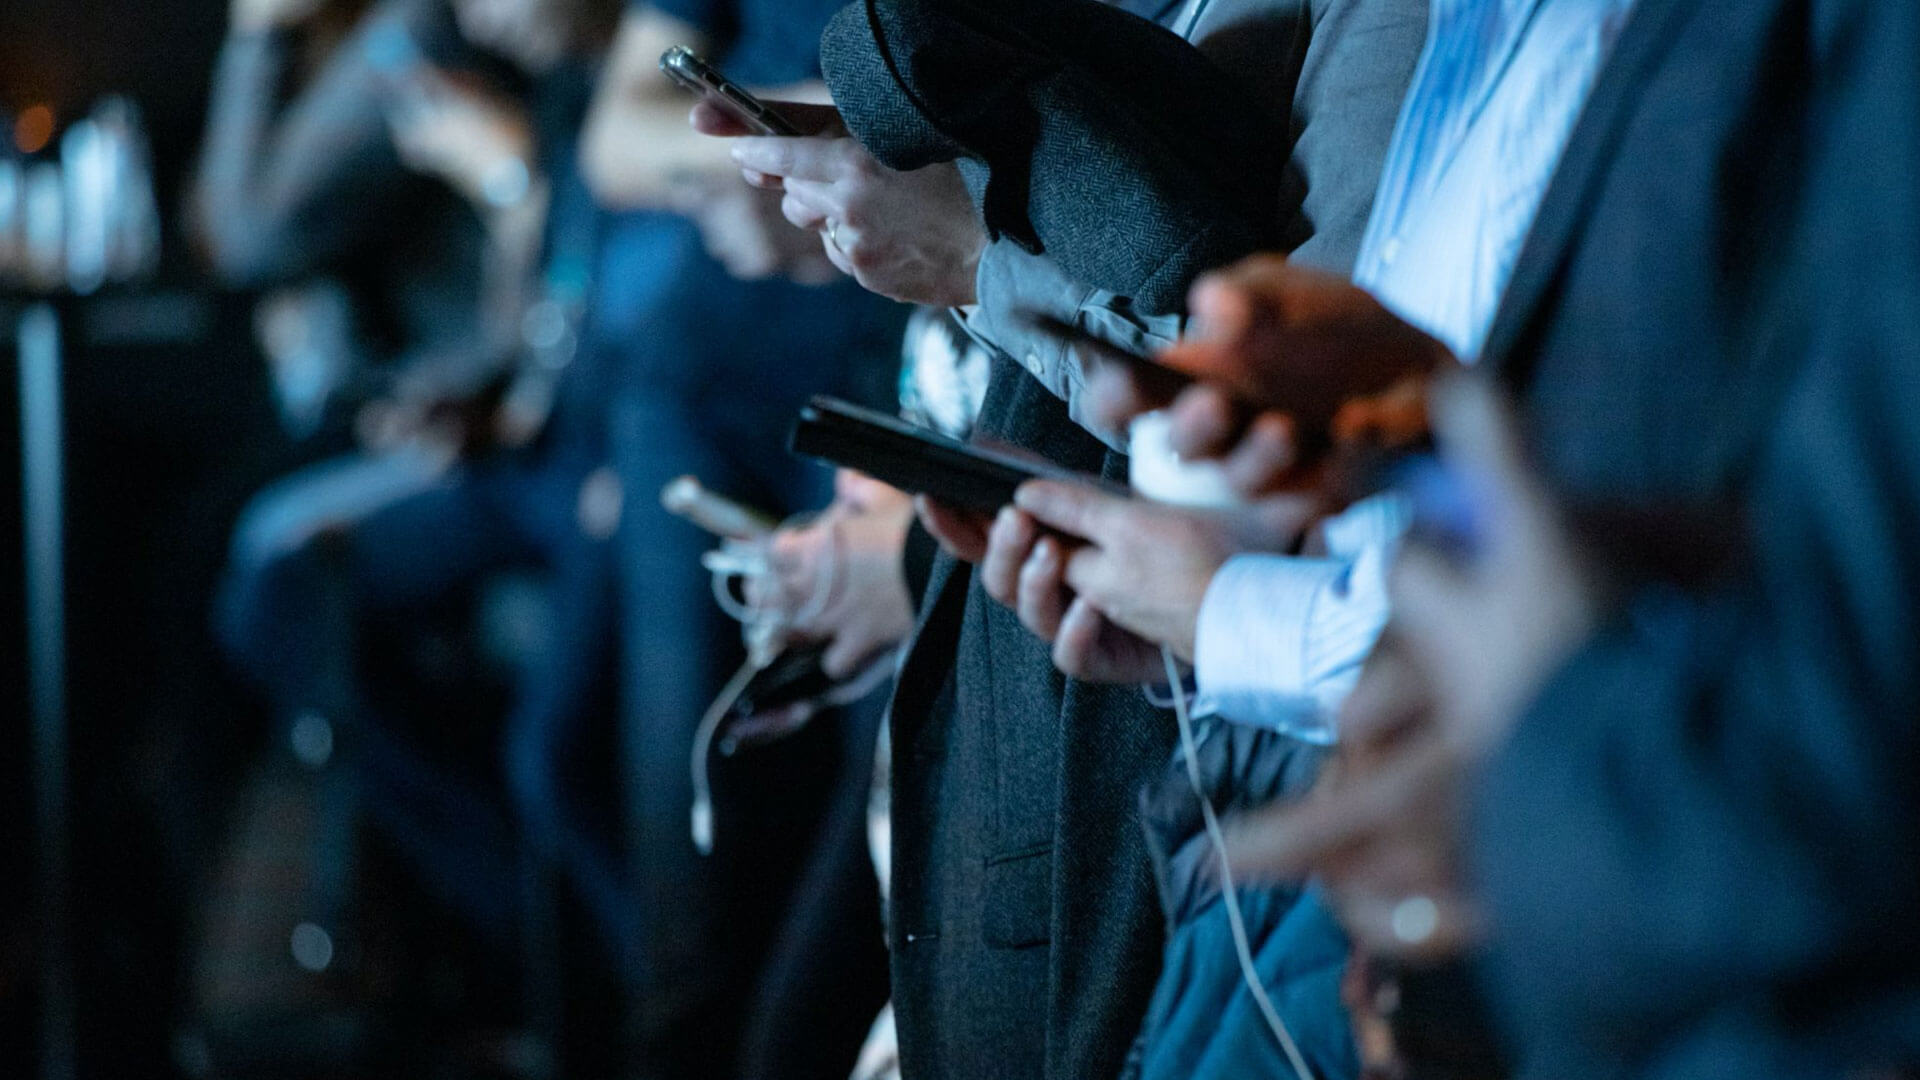 A line of professionally-dressed individuals standing side-by-side, all using smartphones.